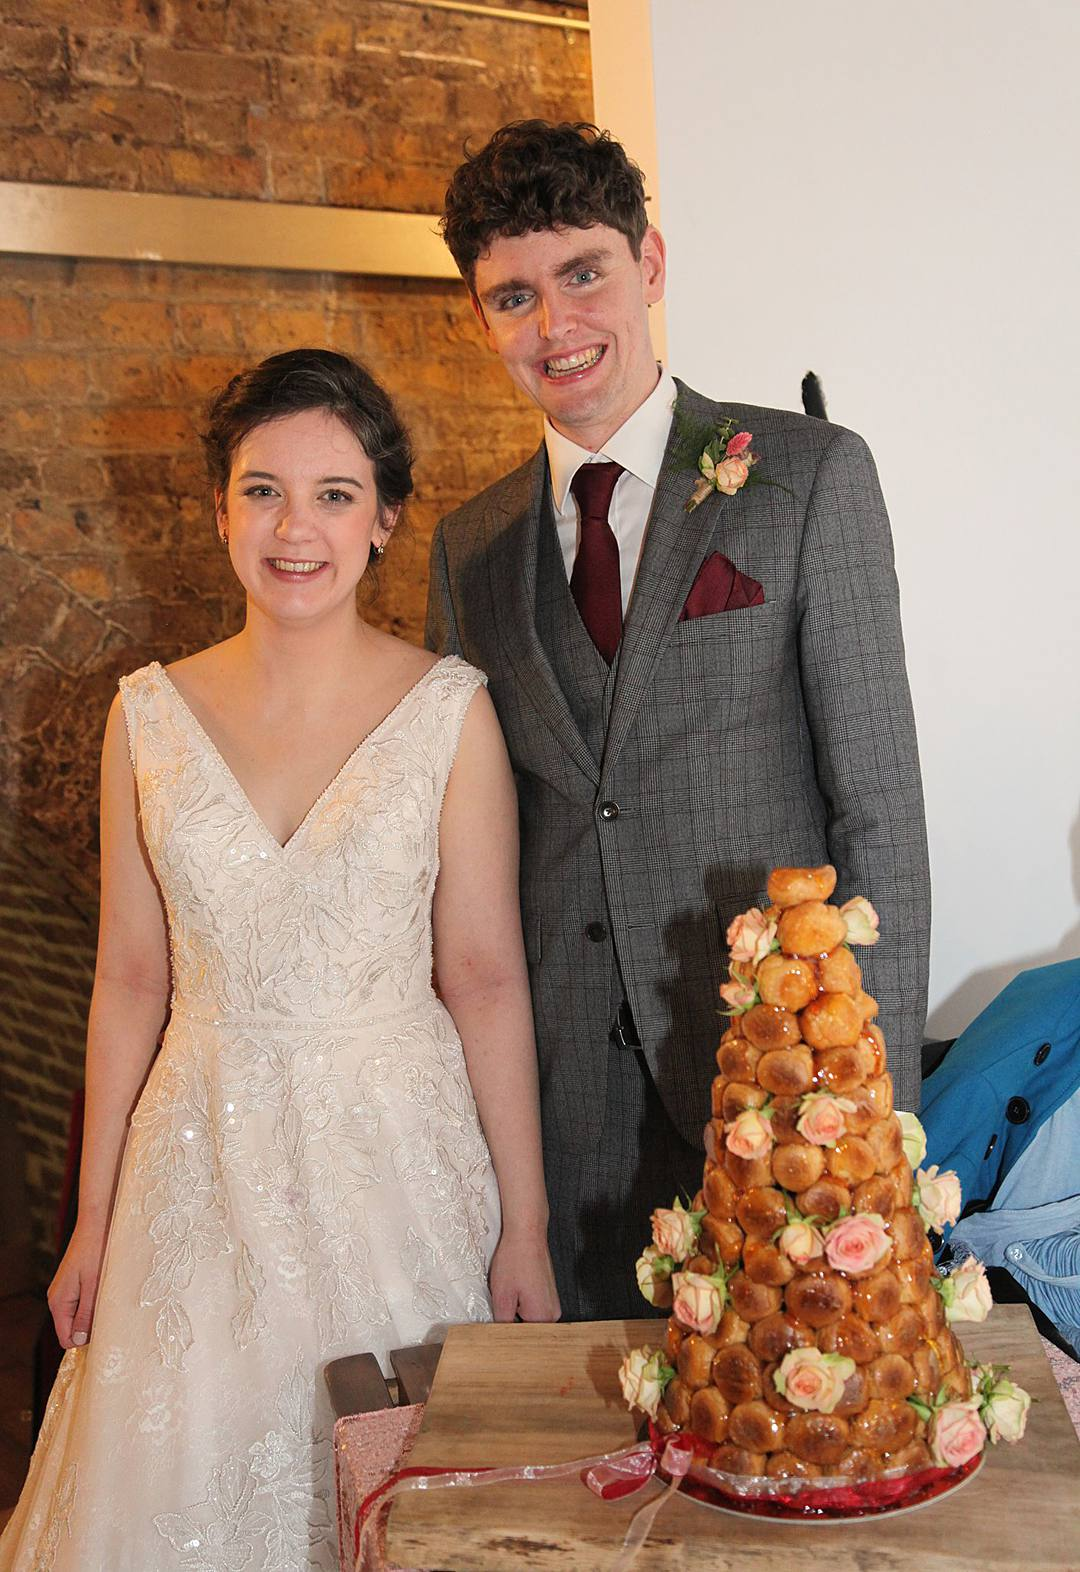 Louise Moule Photography, Crazy Golf, Profiterole Tower, Red London Bus Hire, Wedding Planner, City Wedding, Event Planner, London Wedding Planner, City Weddings, Devine Bride fun hackney wedding